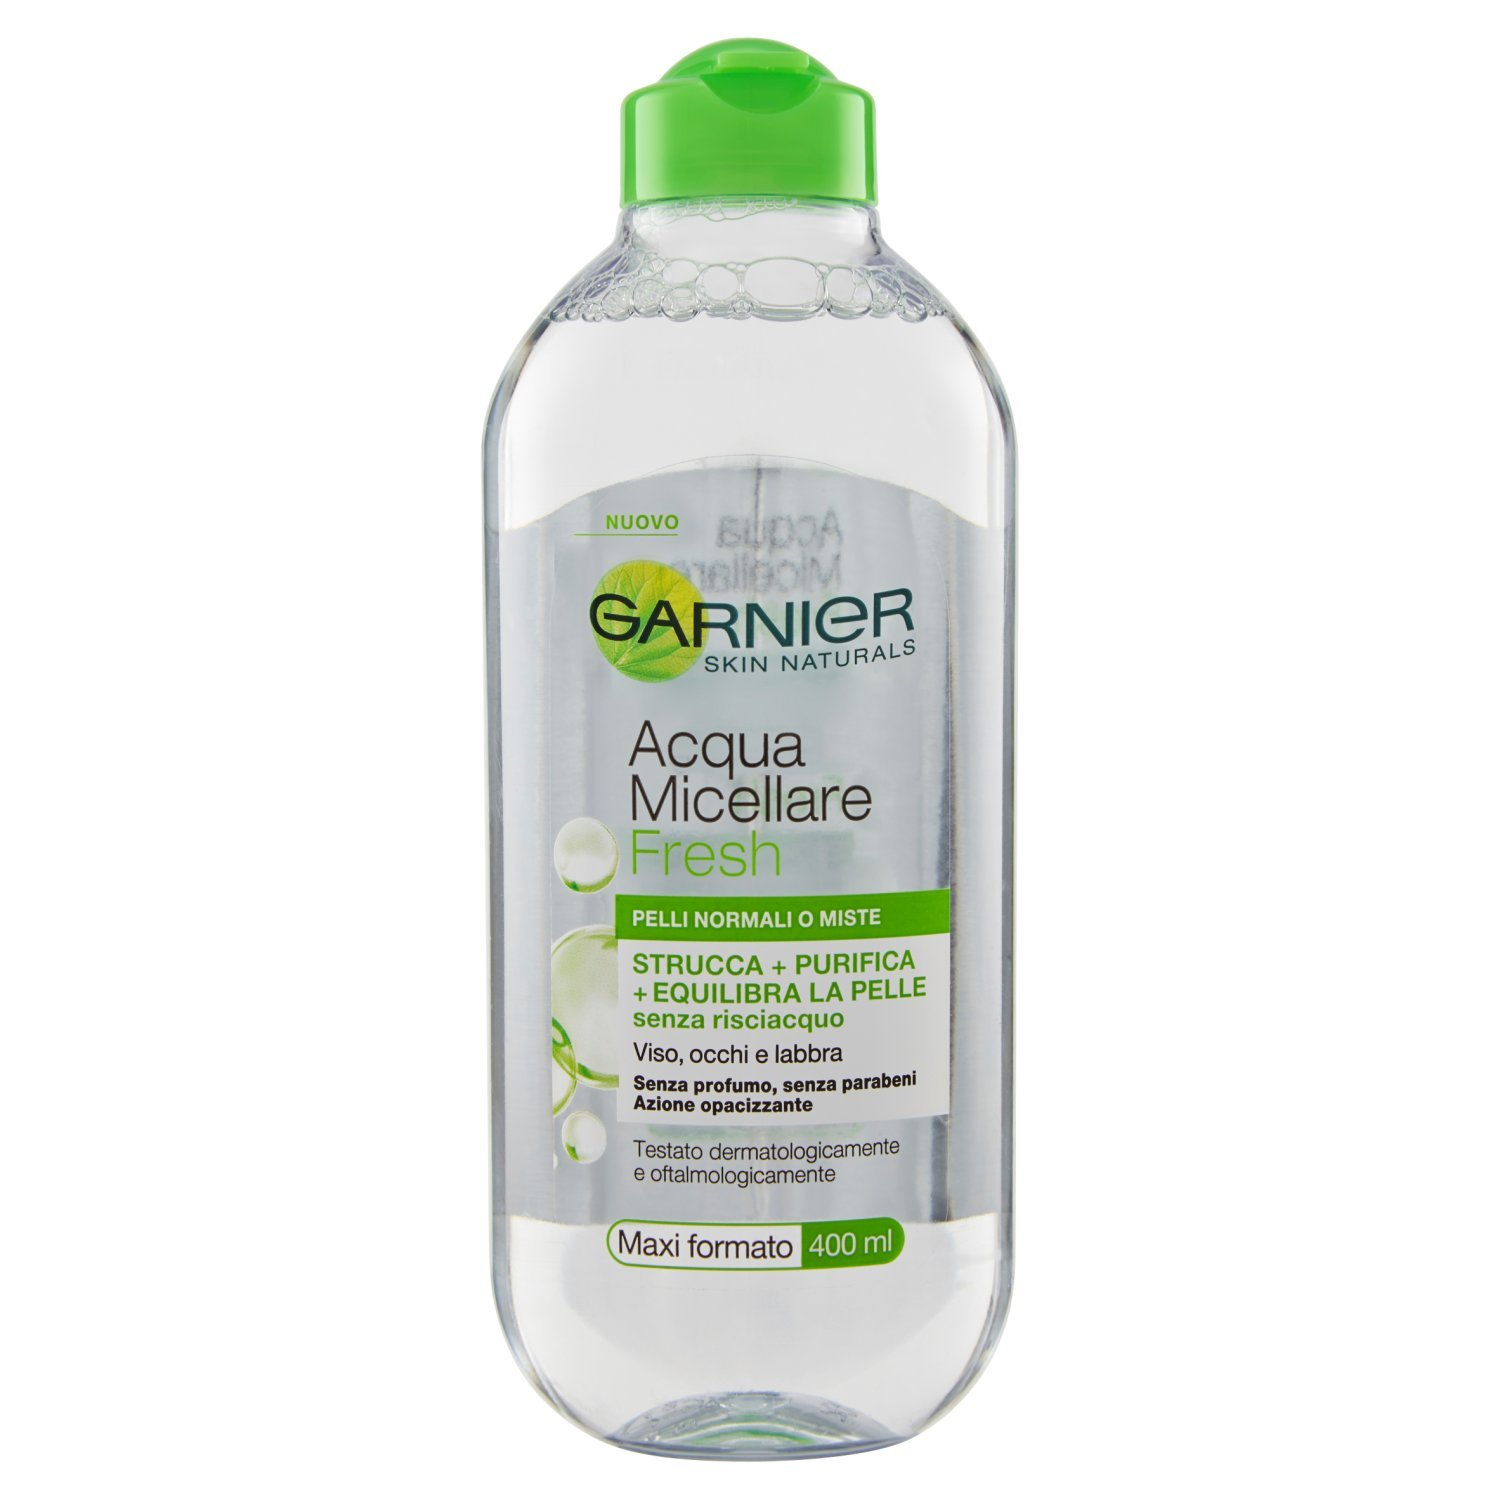 Garnier micellar water daily detergent, 400 ml All in 1 C4972600